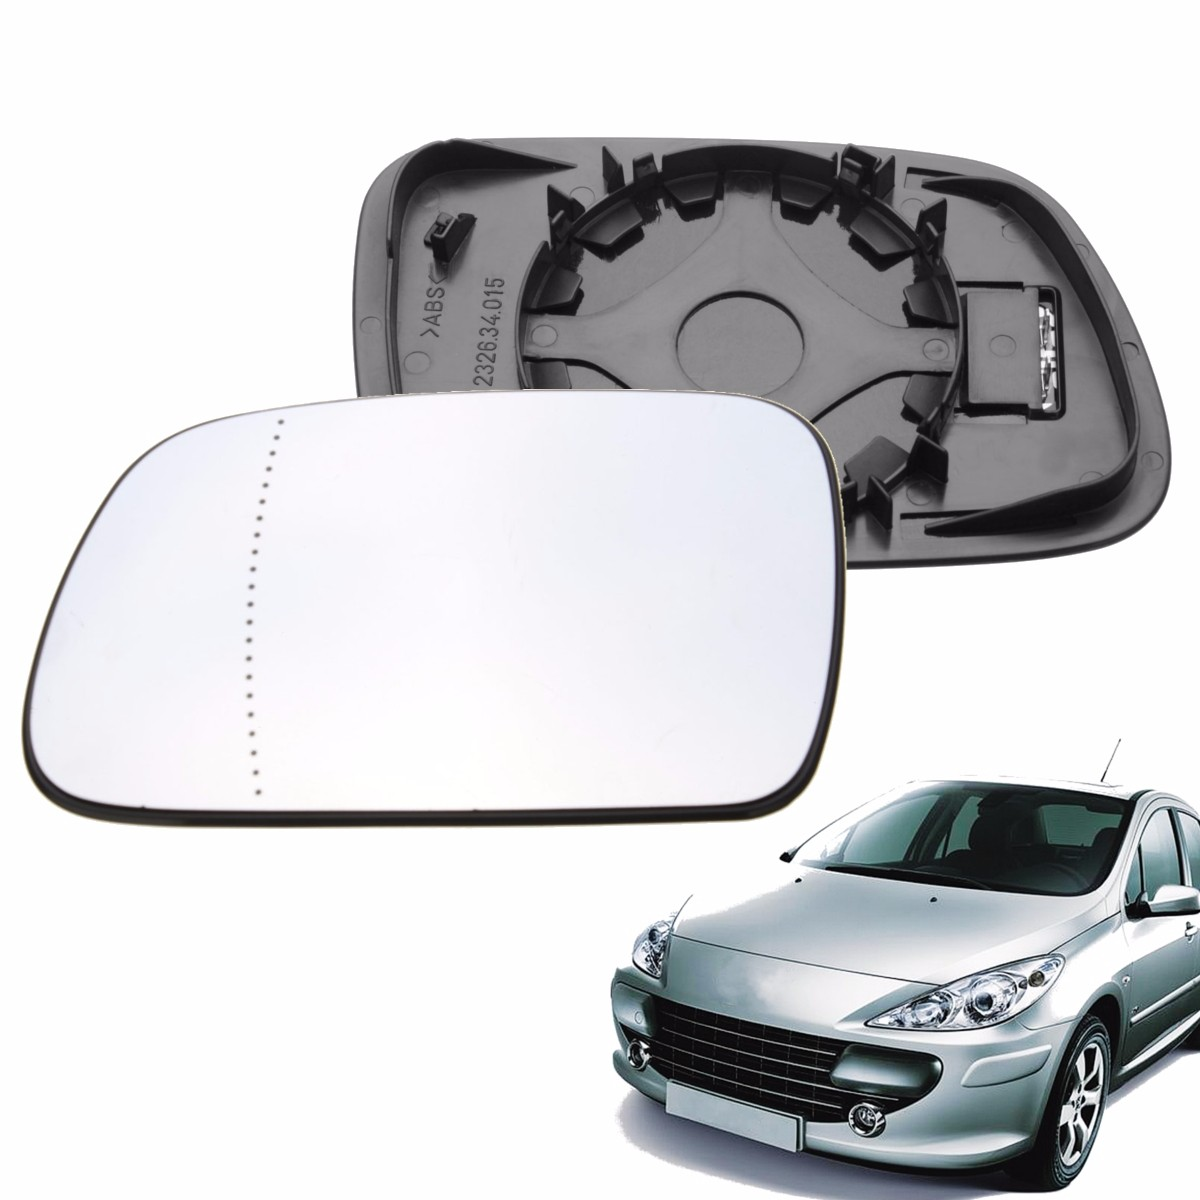 PEUGEOT 108  2014 HEATED LEFT WING MIRROR GLASS WIDE ANGLE ELECTRIC